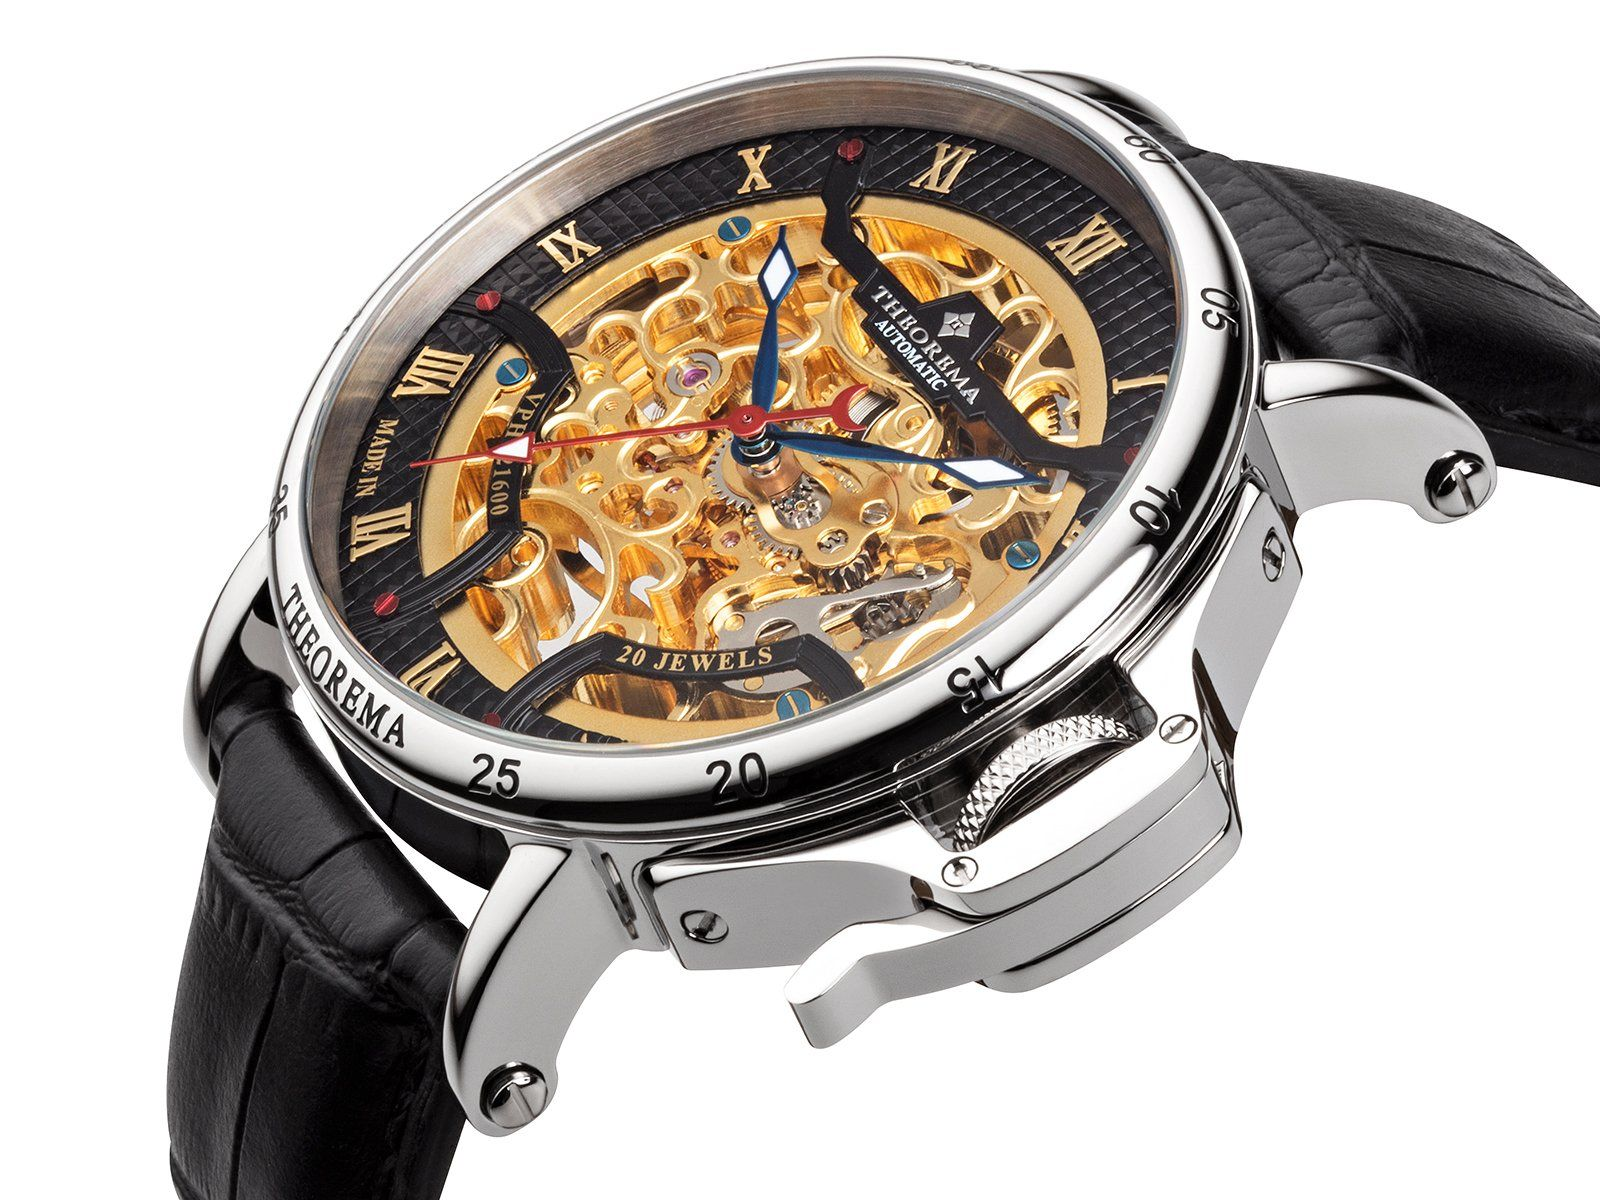 Madrid GM1121 Theorema Made in Germany Cool watches